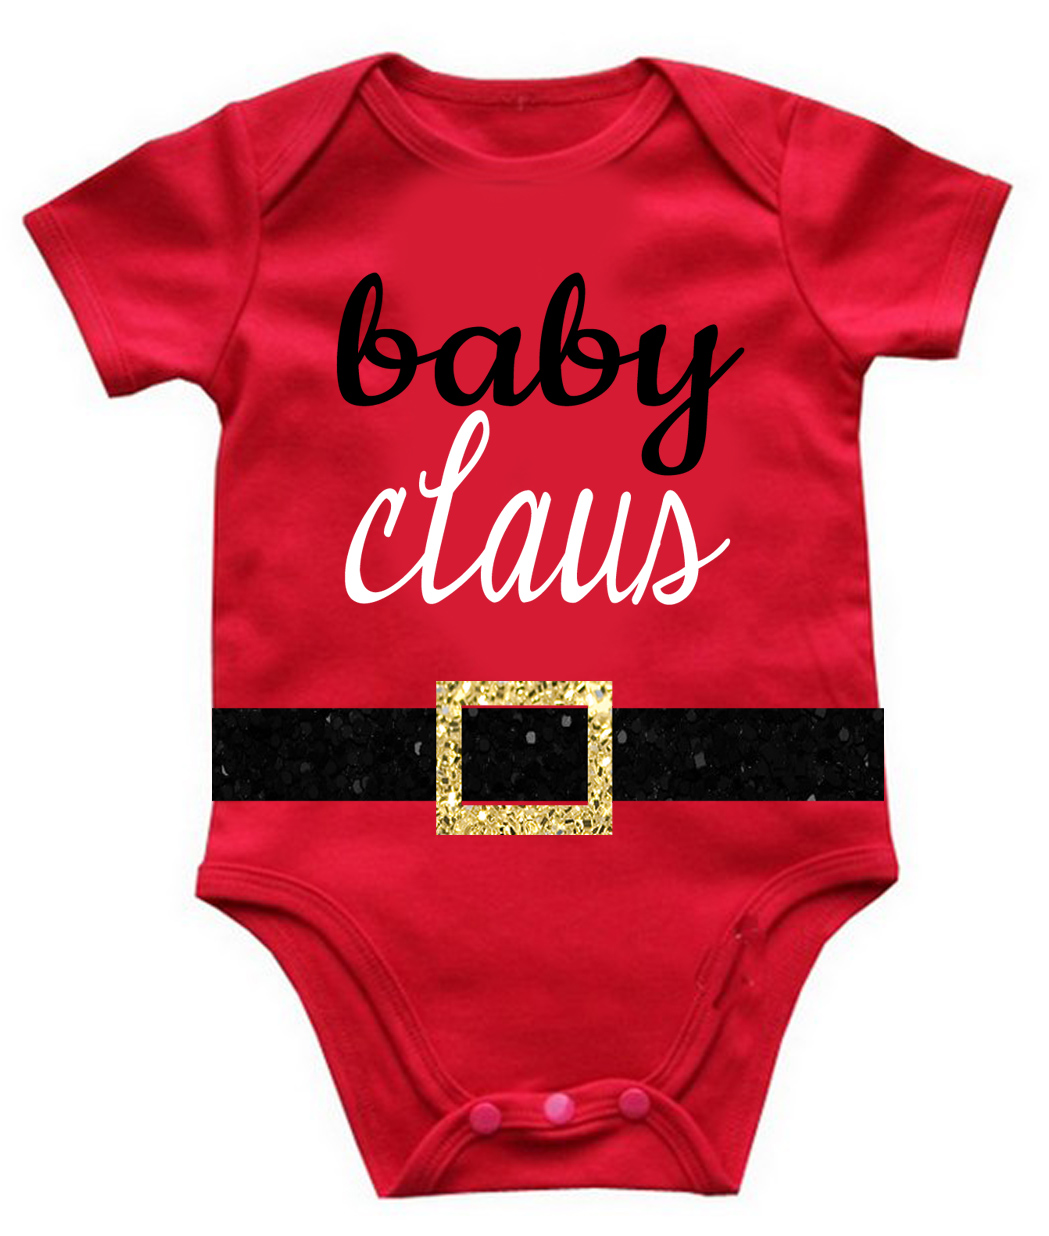 Baby Claus First Christmas Baby Bodysuit